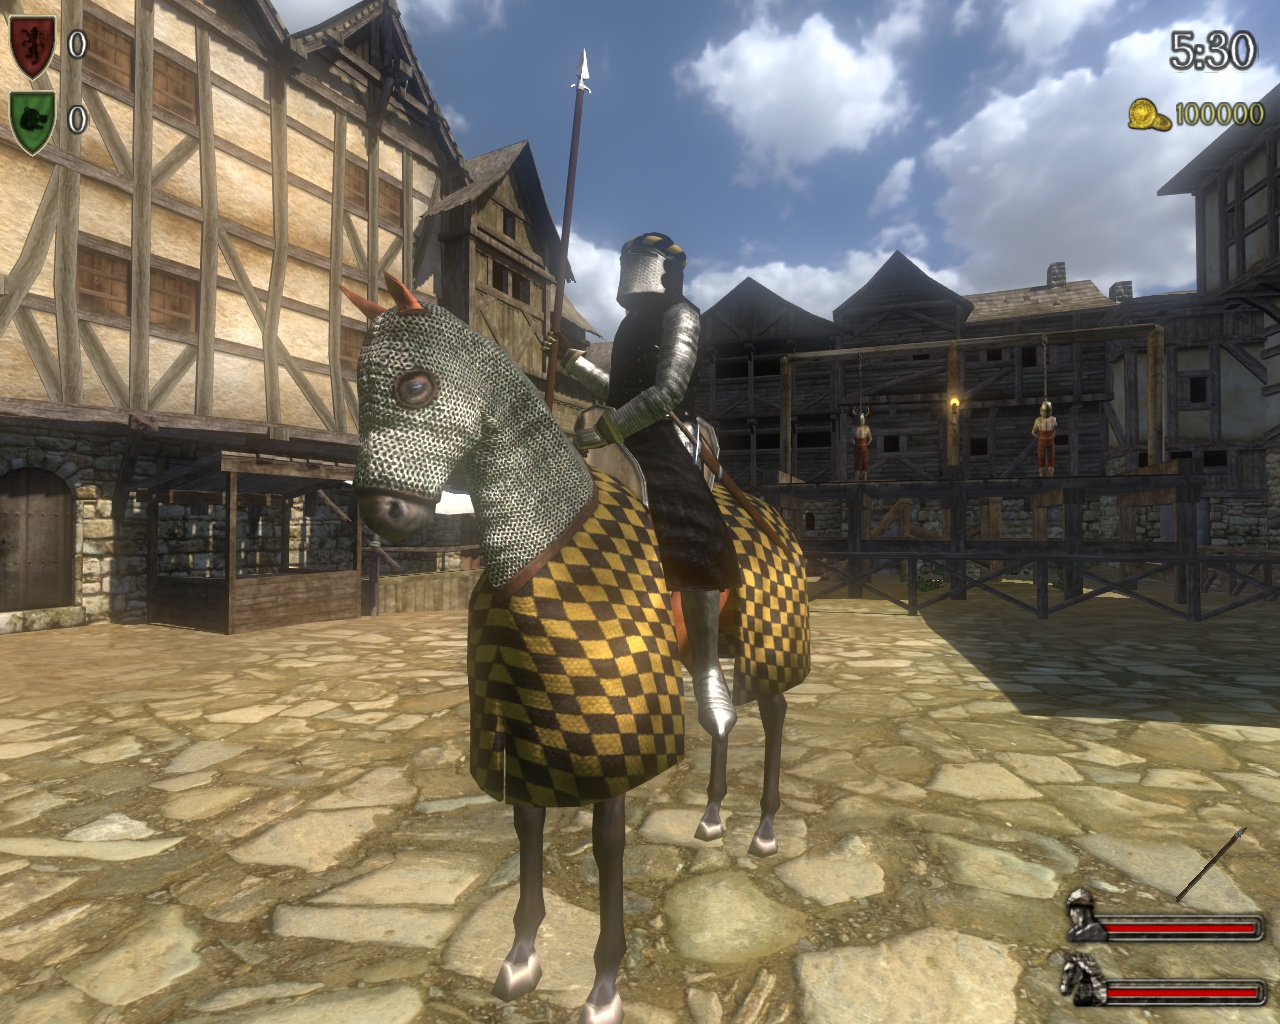 executioner Mount & Blade Warband Full PC Game